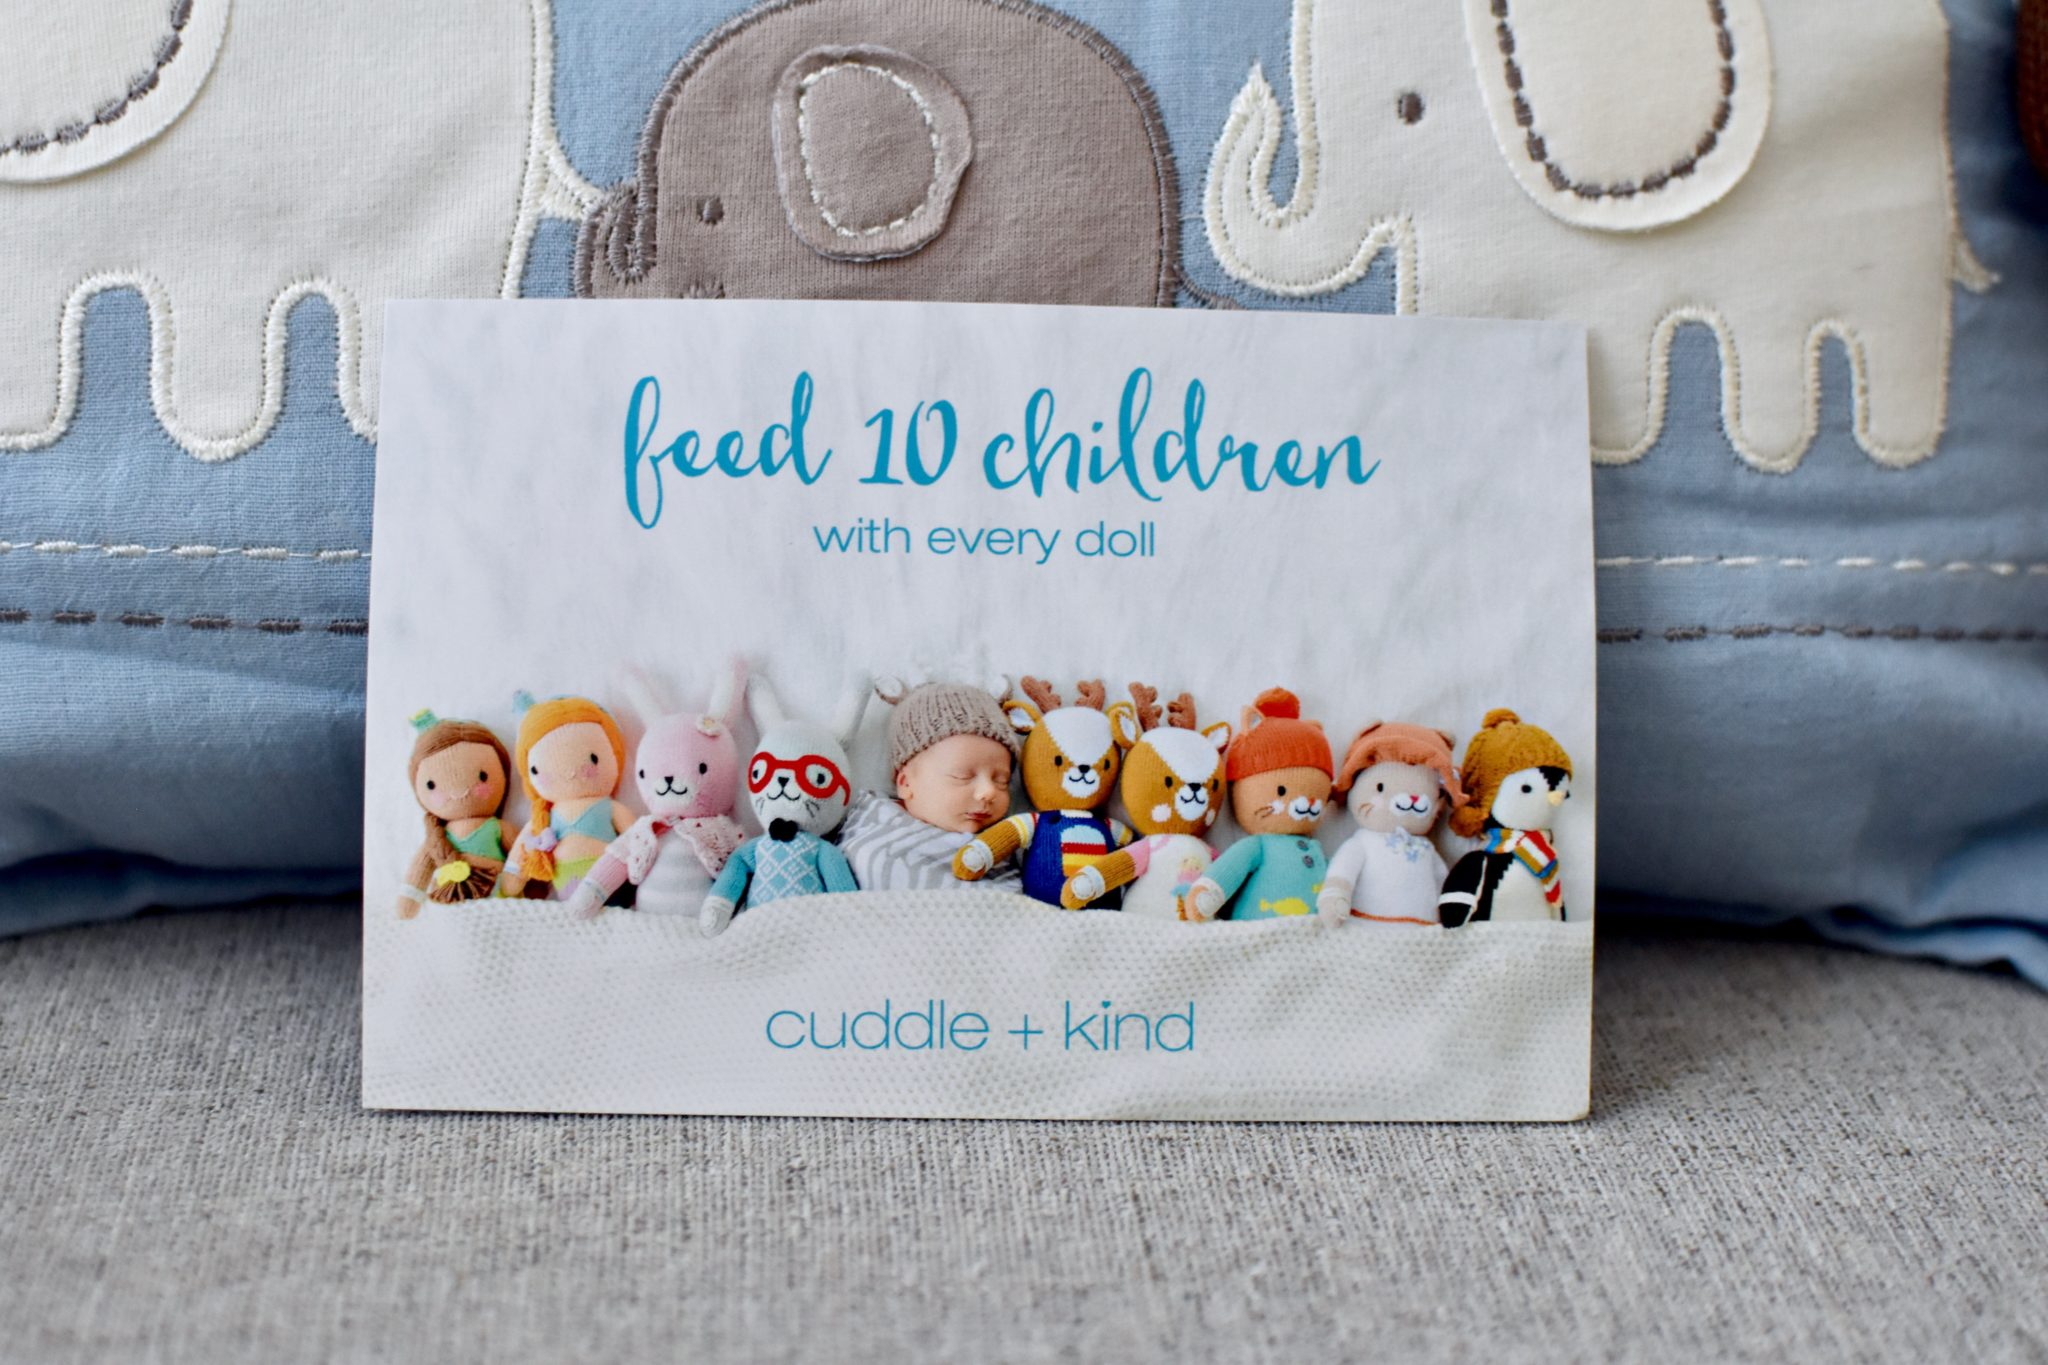 cuddle + kind nursery addition // cait's plate